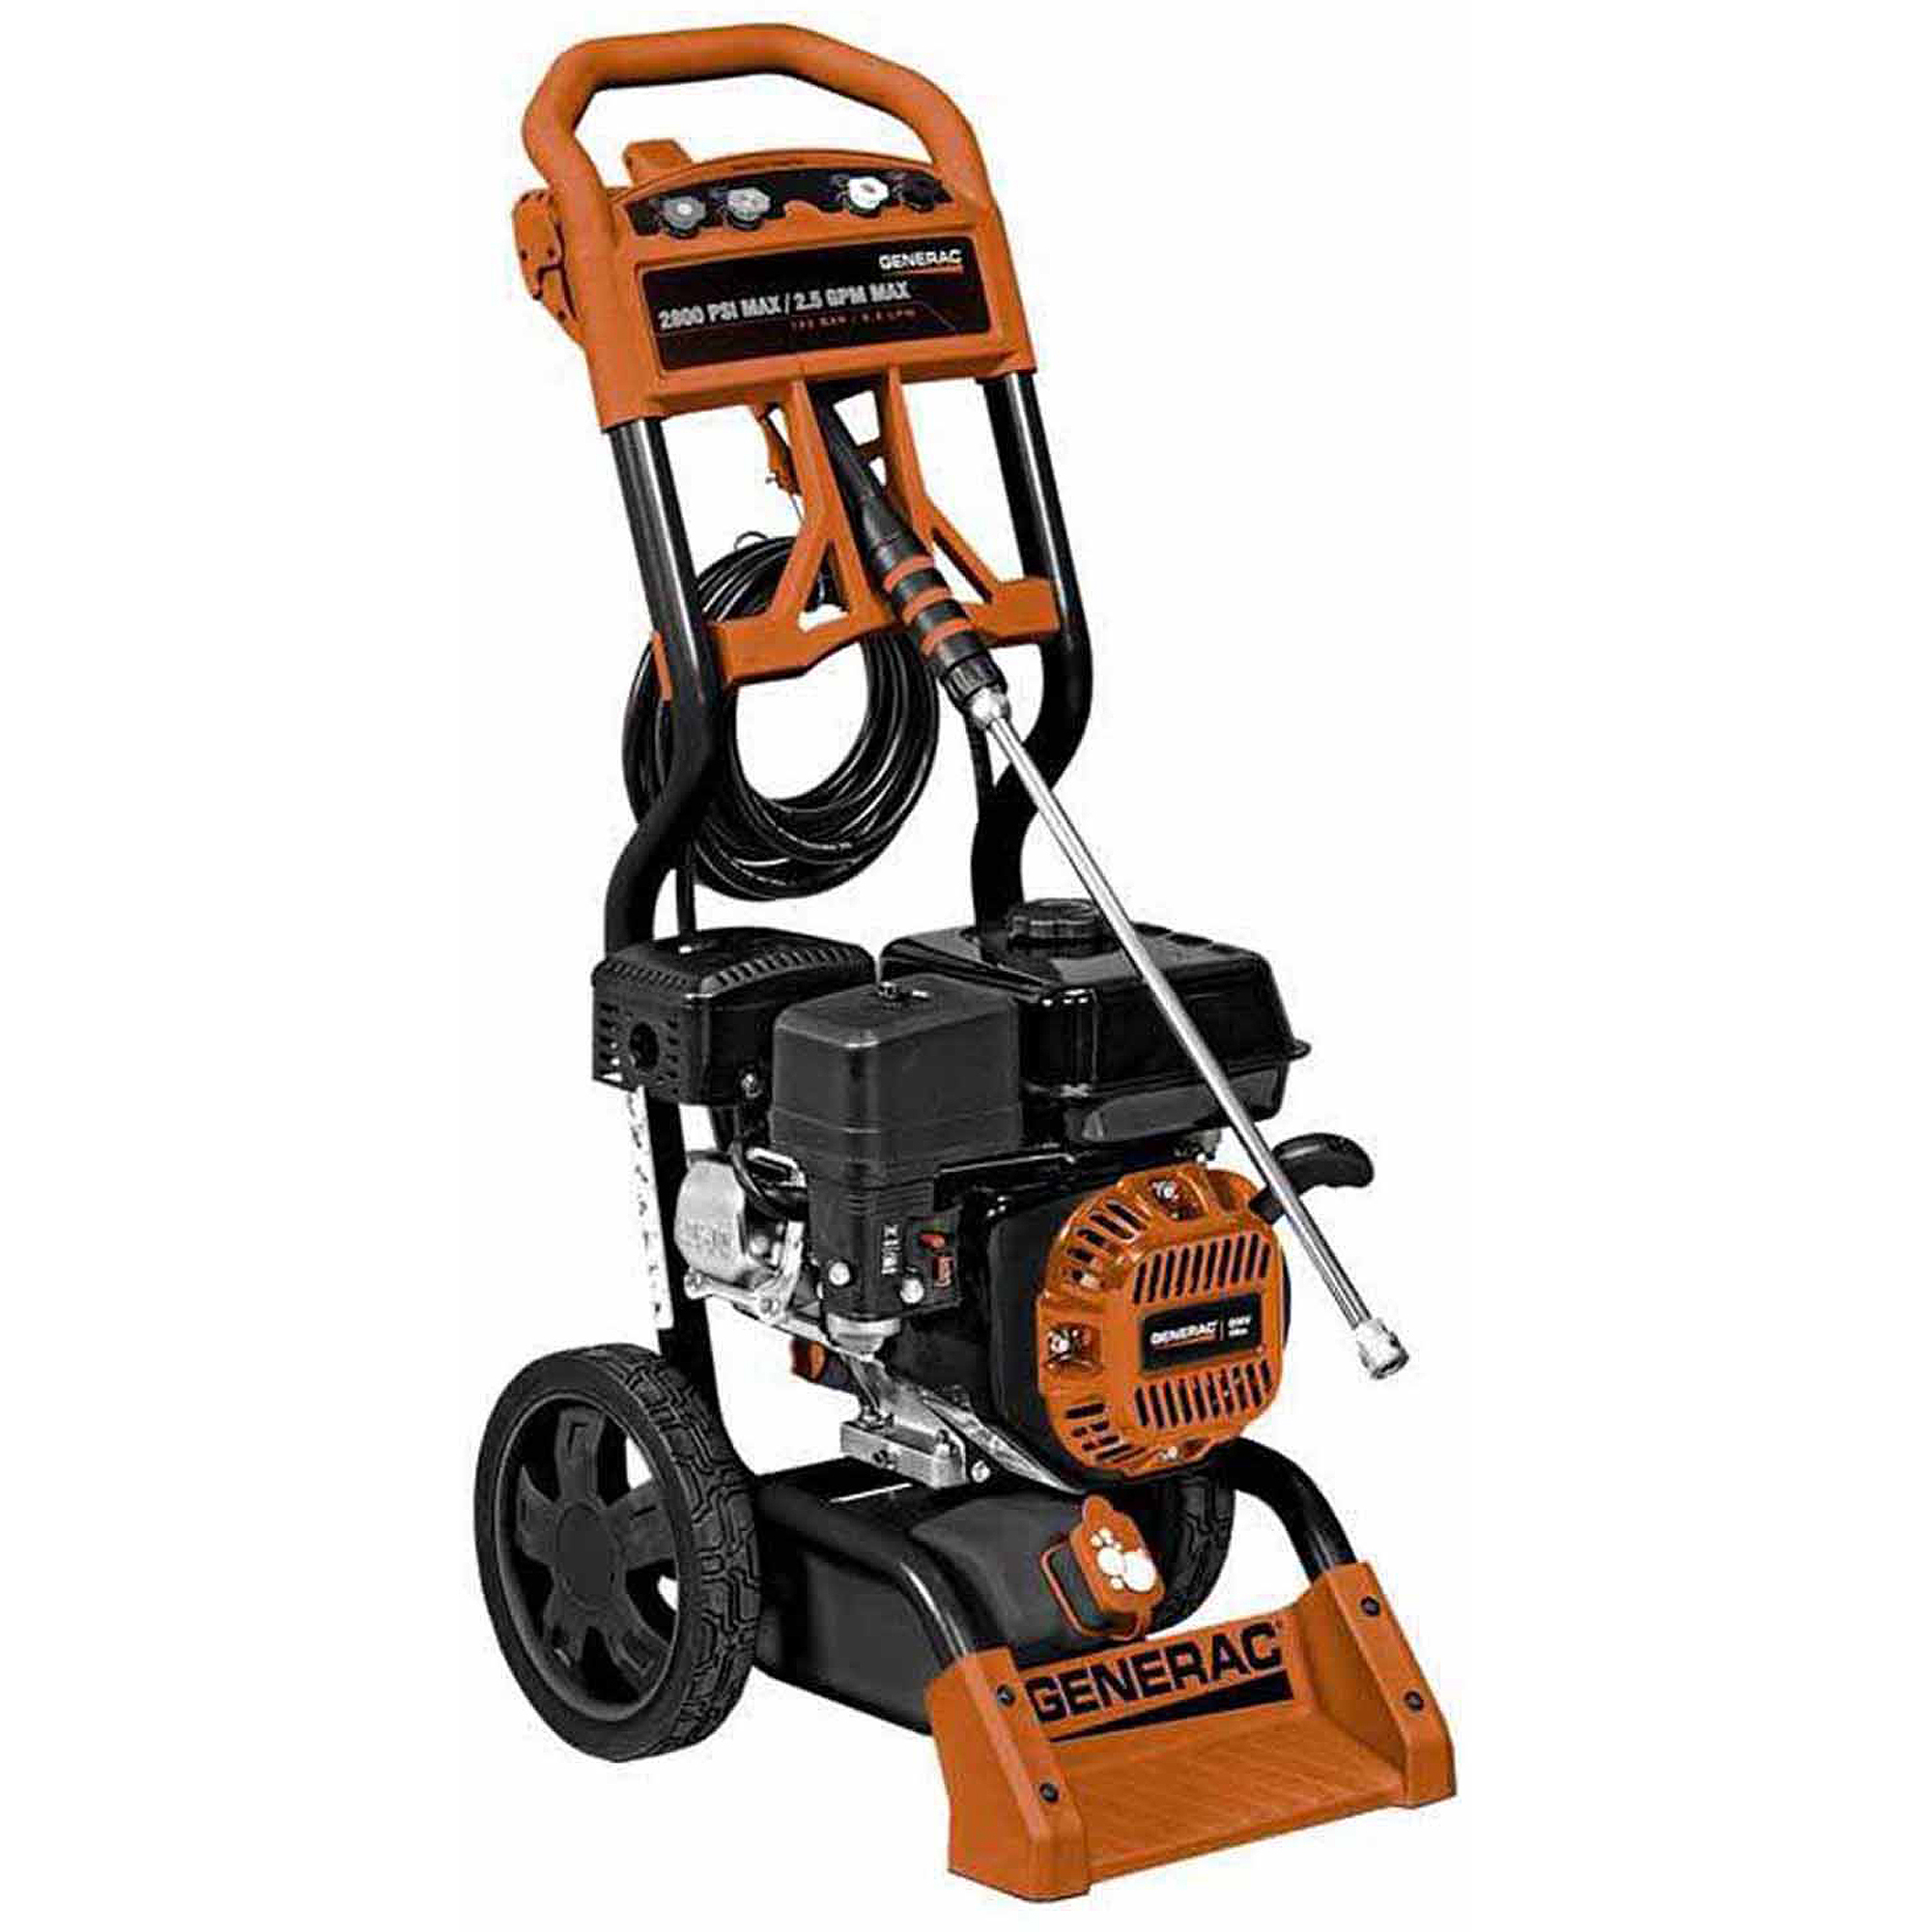 Generac 2,800 PSI, Gas Pressure Washer